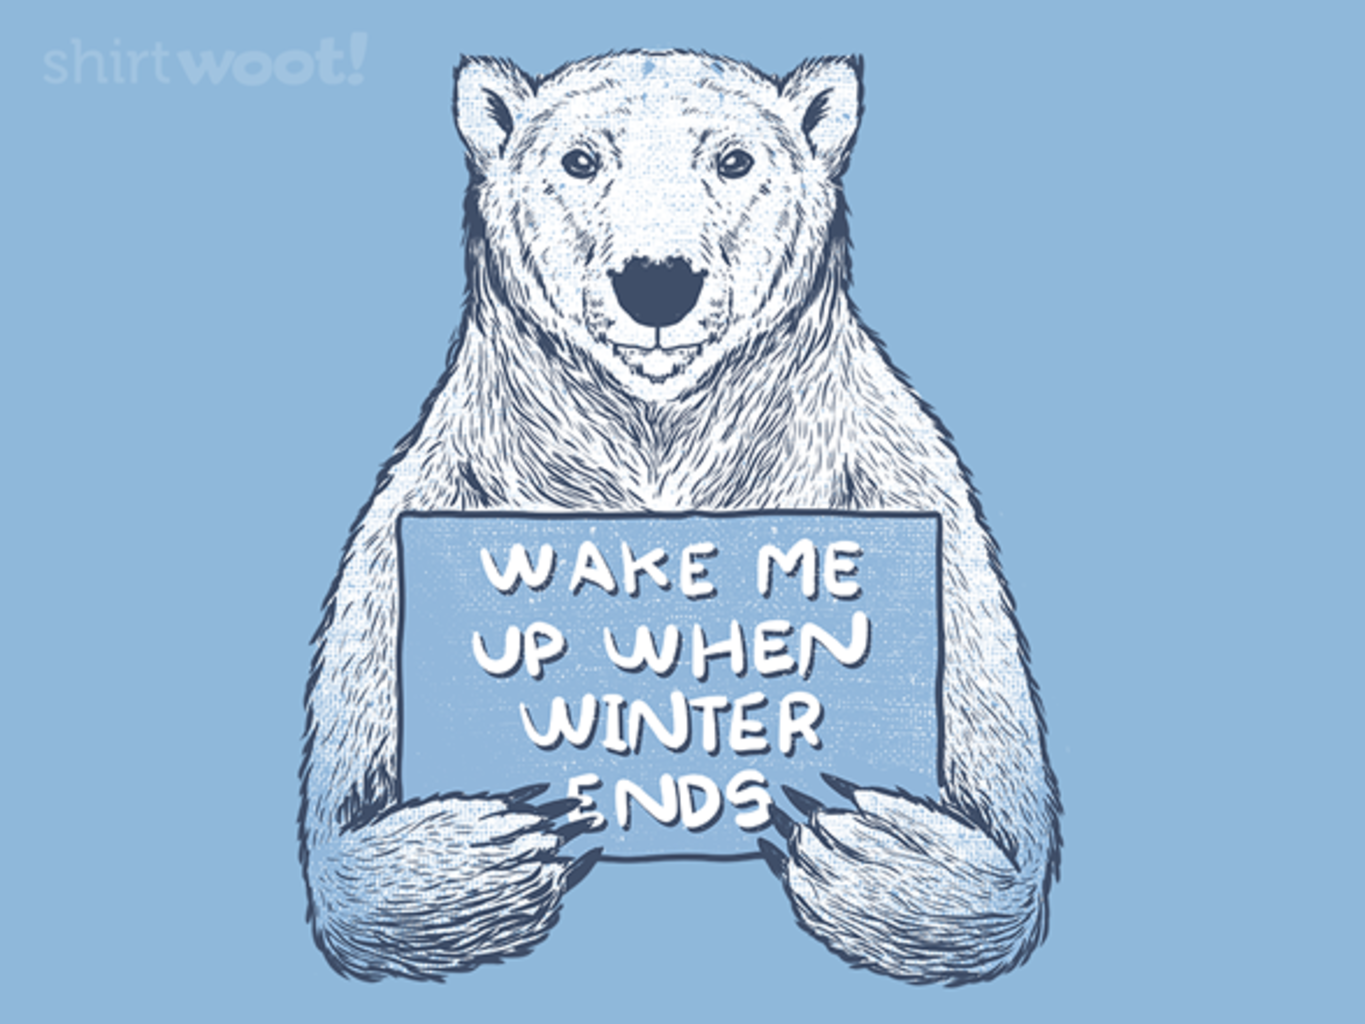 Woot!: Wake Me Up When Winter Ends - $8.00 + $5 standard shipping